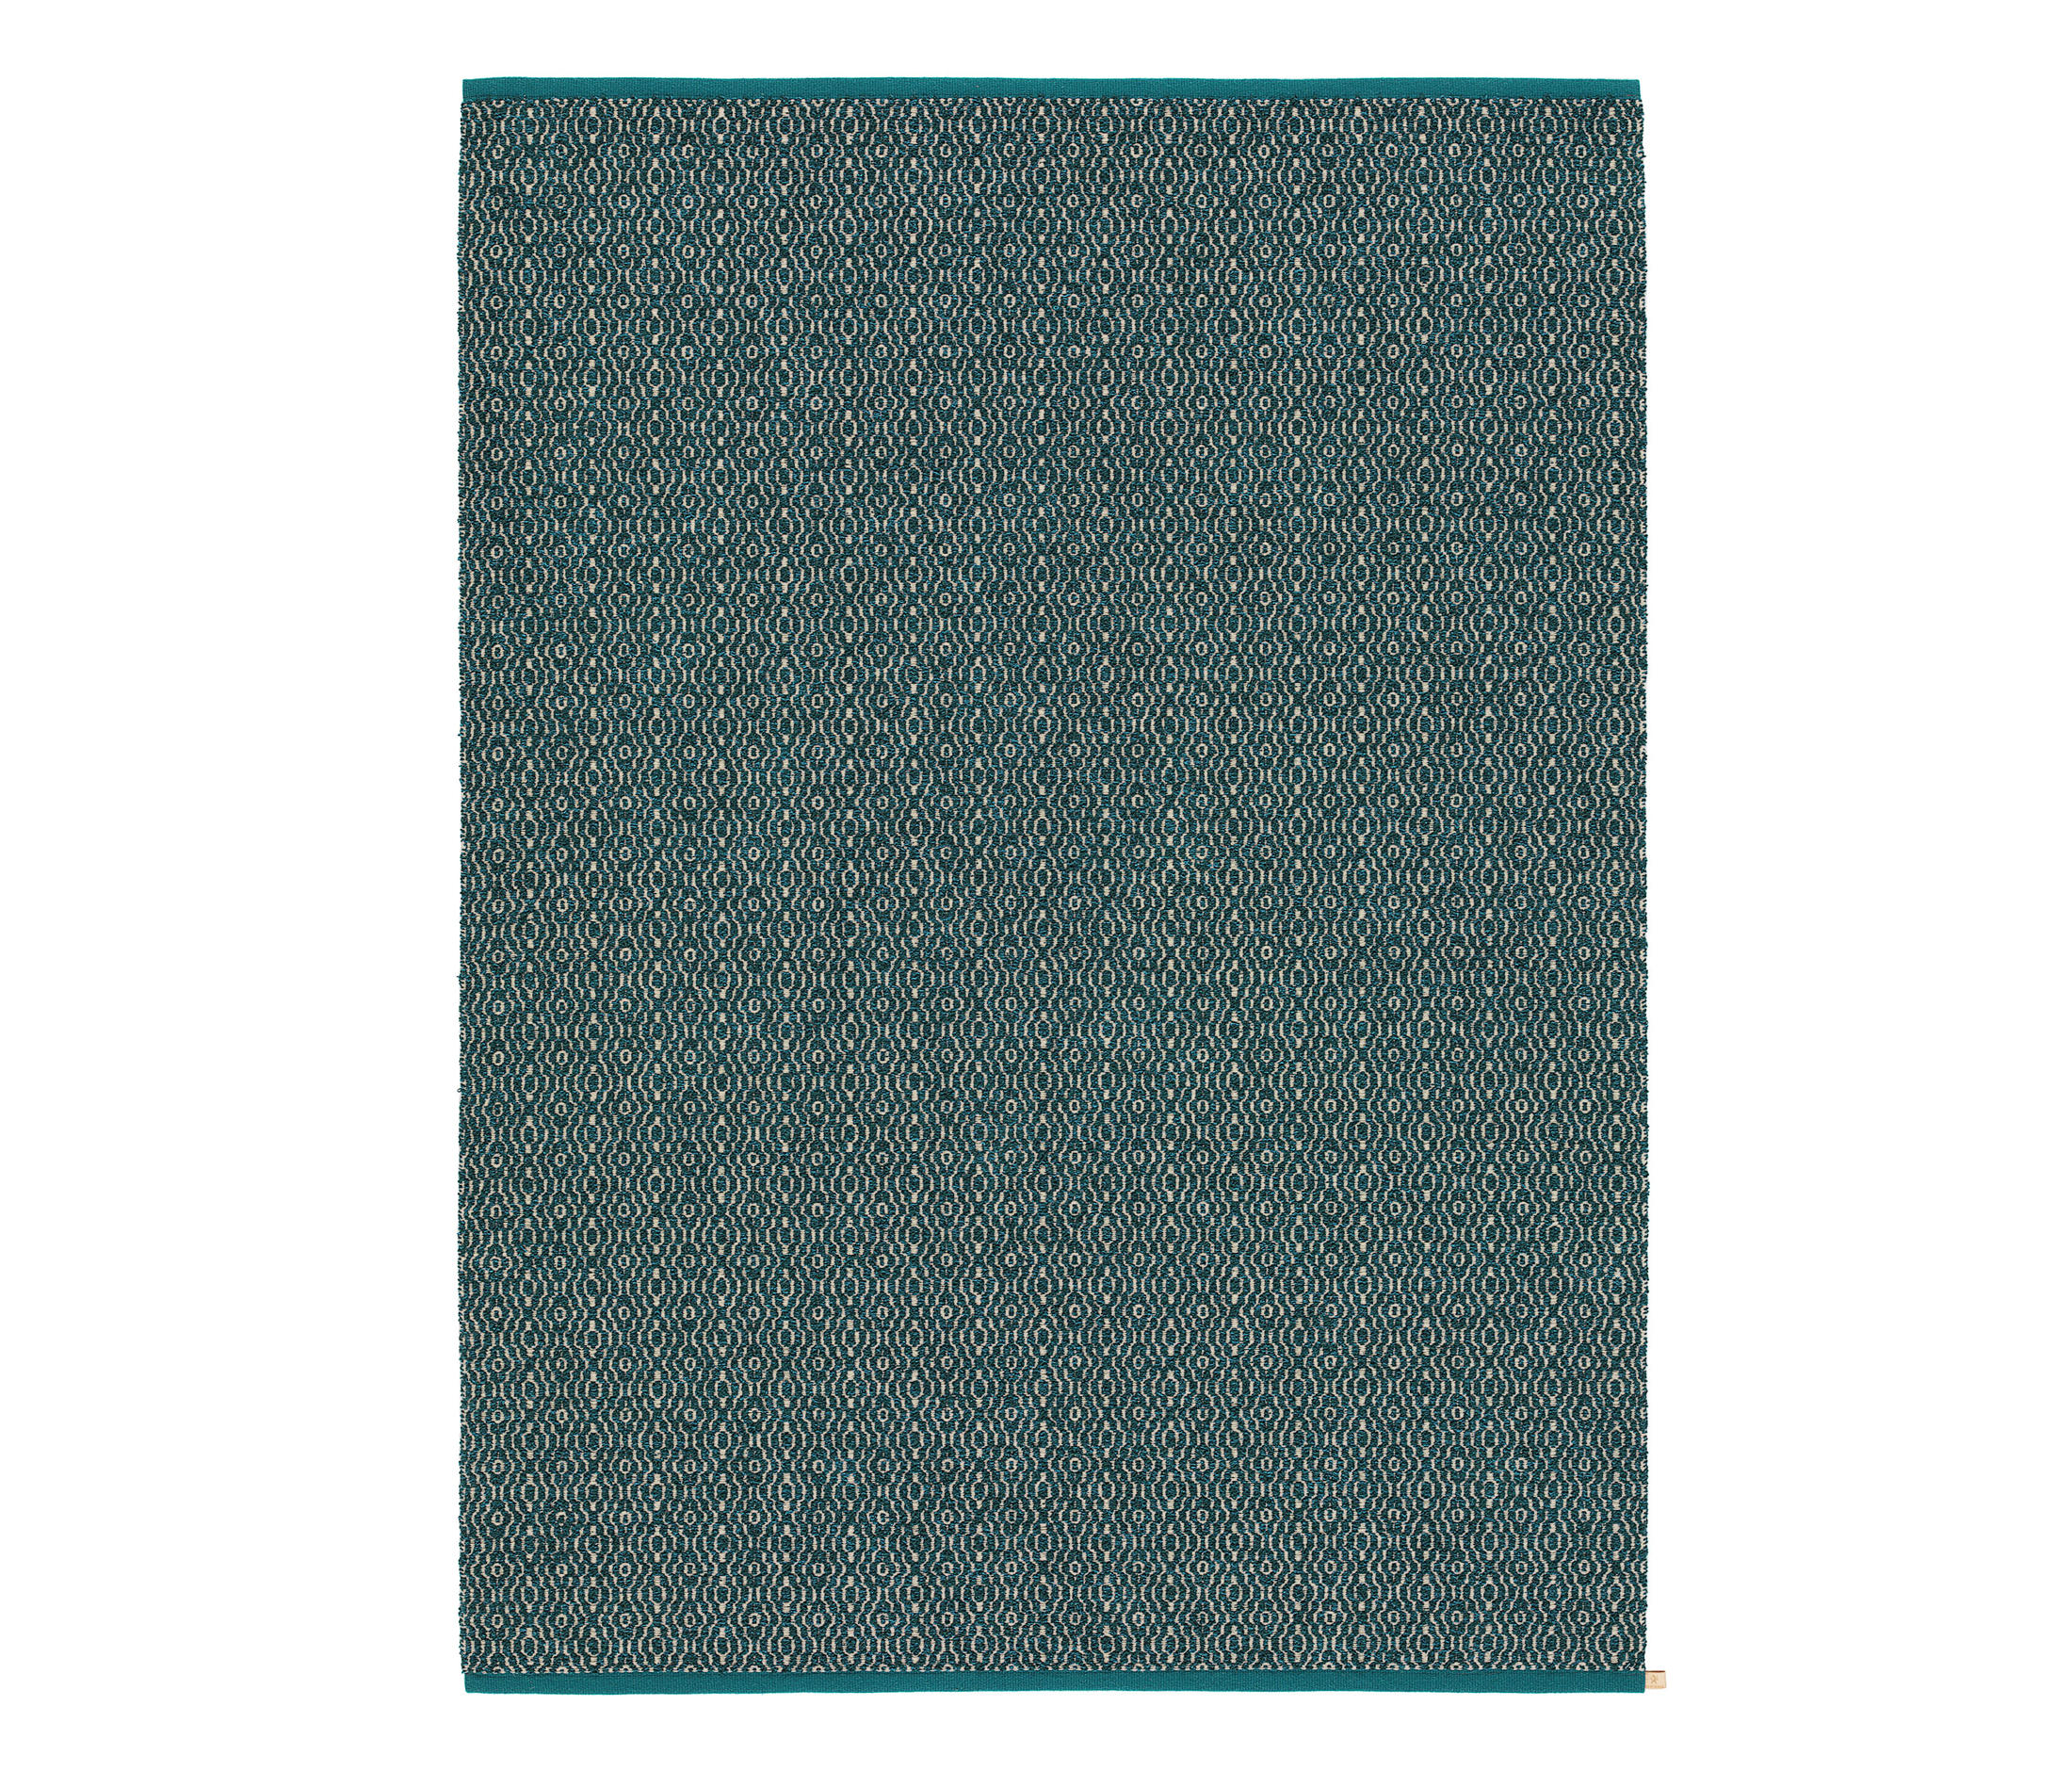 MAROCCO SPEARMINT 301 Rugs Designer Rugs From Kasthall